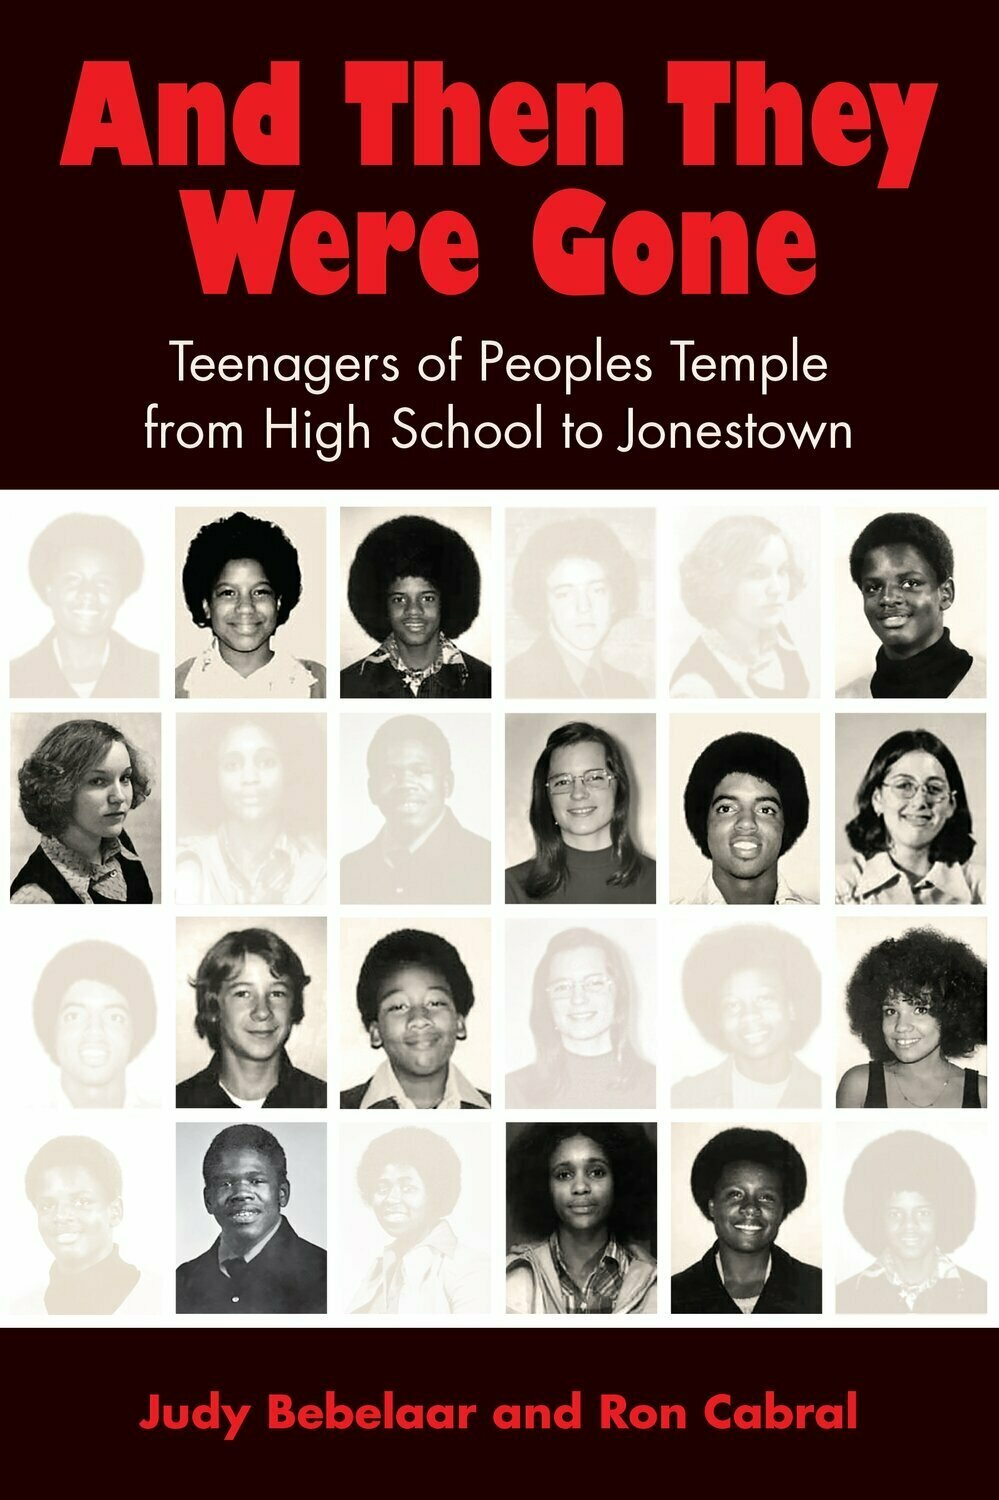 And Then They Were Gone: Teenagers of Peoples Temple from High School to Jonestown - Multicultural Non-Fiction